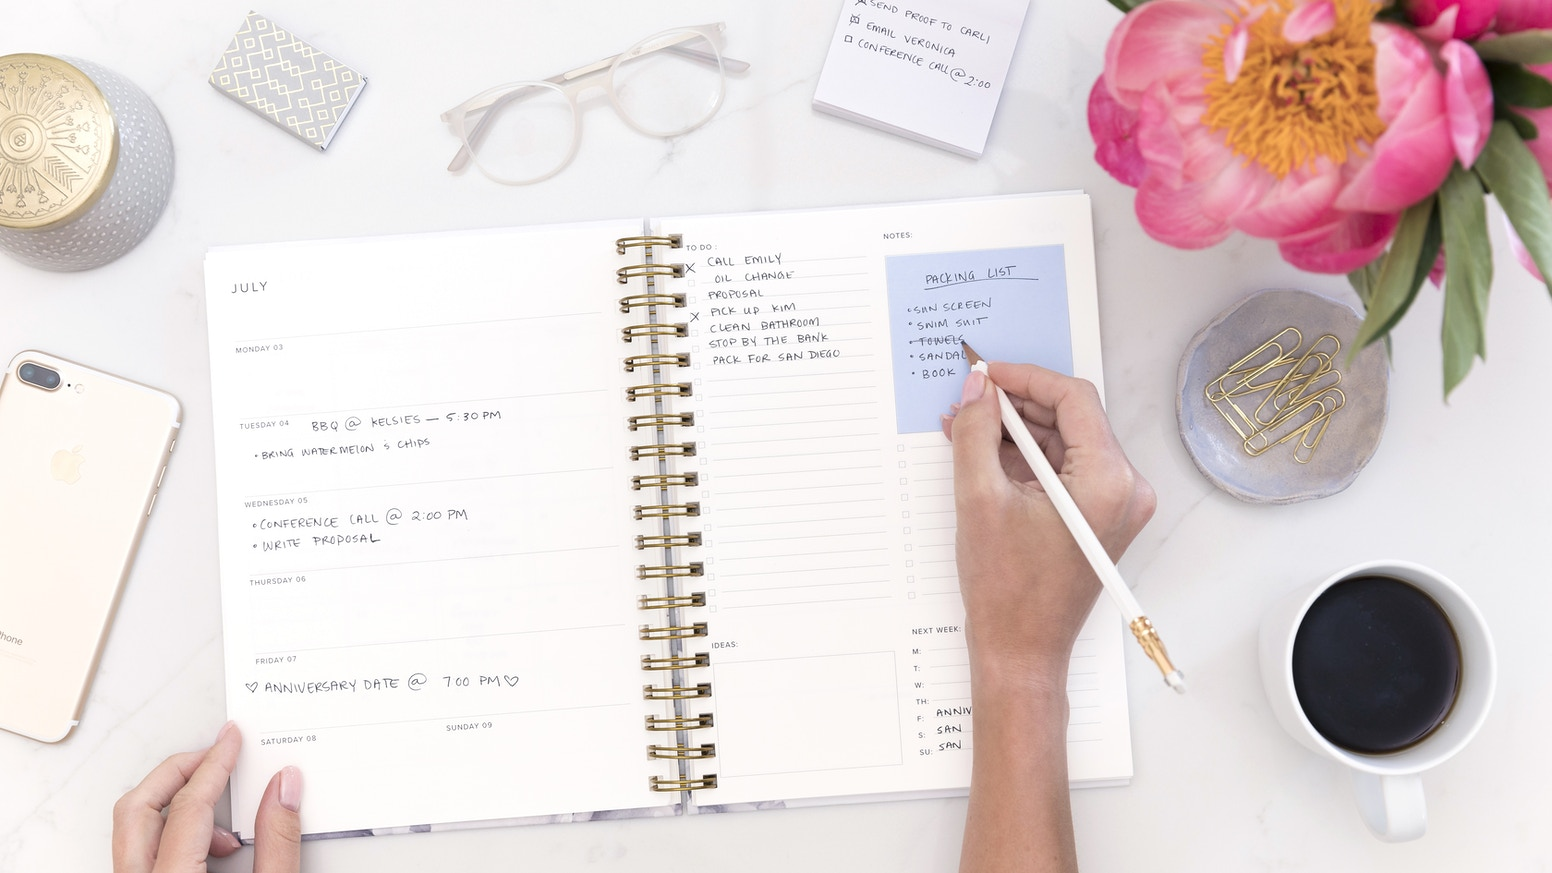 A customized planner to fulfill your planning needs according to your preference, schedule, and style.